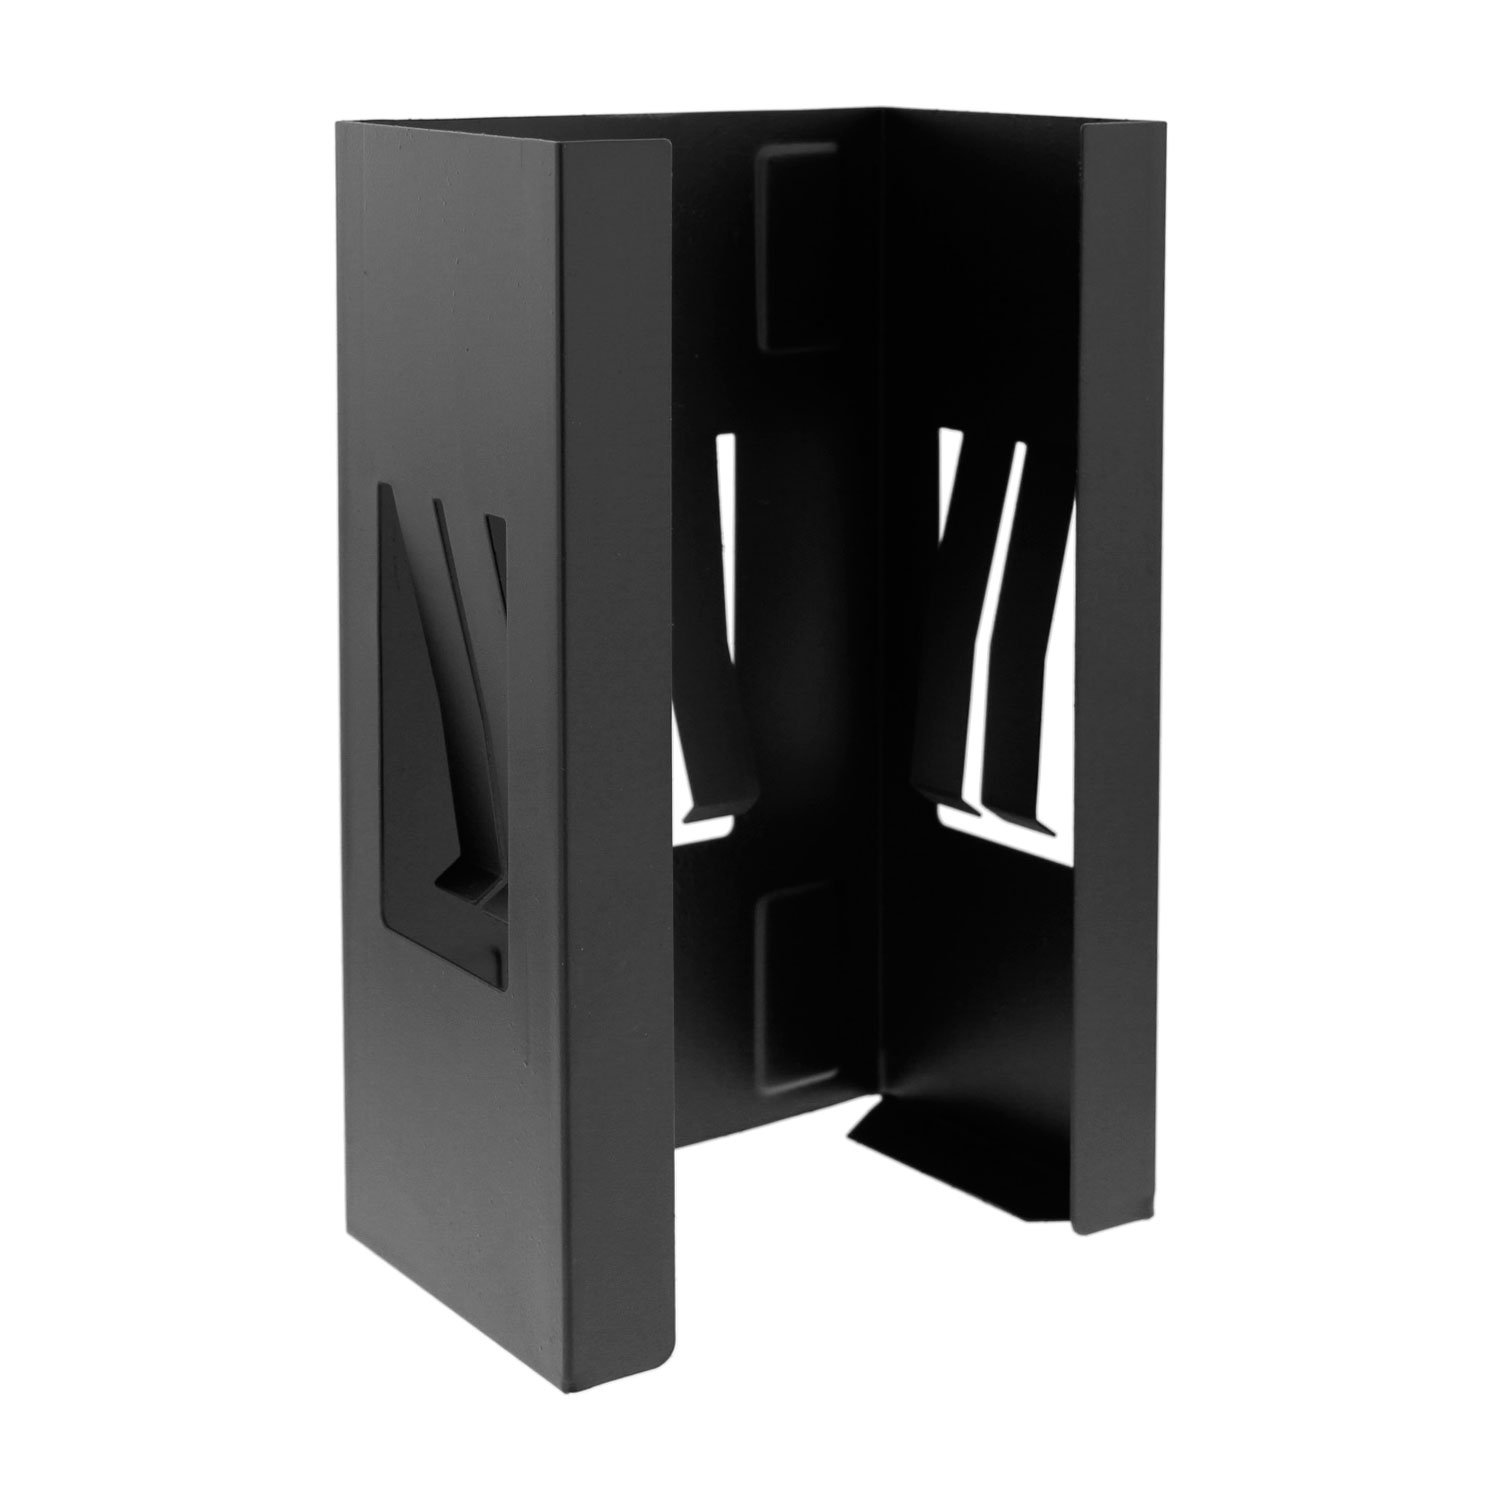 TCP Global Magnetic Glove and Tissue Dispenser Holder - Holds Boxes of Gloves, Towels, Wipes, Tissues - Mount onto a Tool Box or in Garages, Workshops and Kitchens by TCP Global